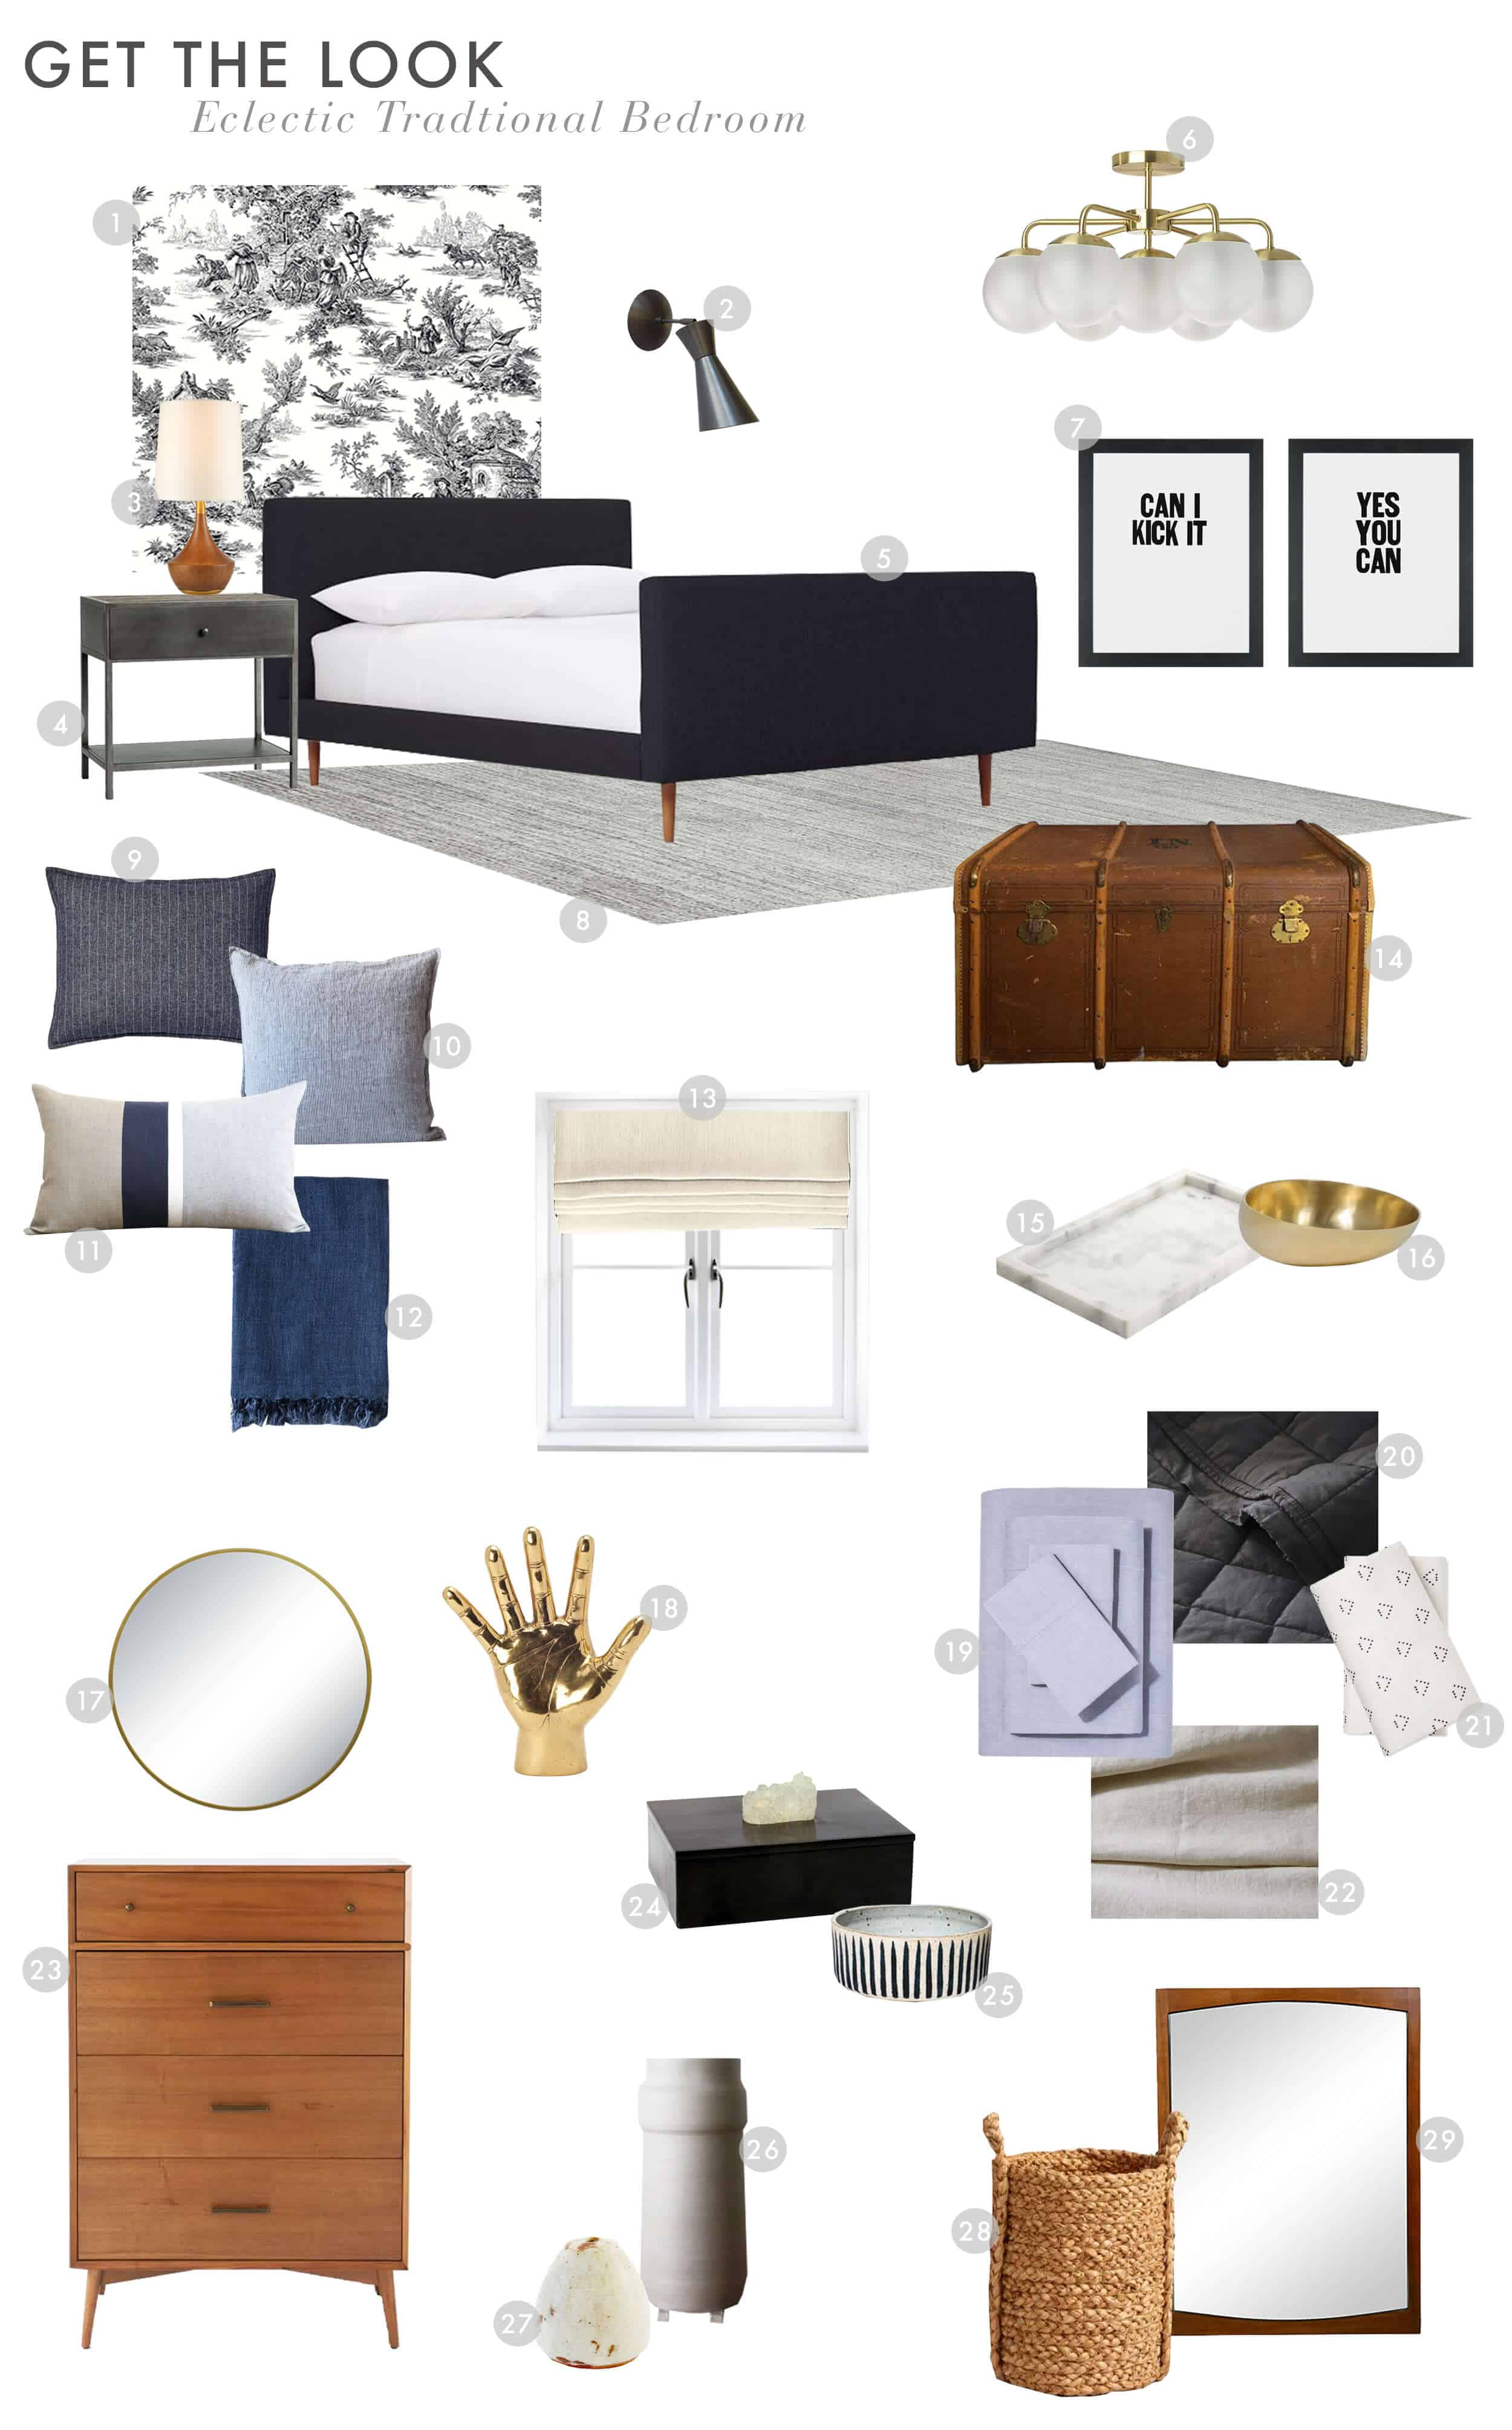 Guest Bedroom_Traditional Eclectic_Industrial_Modern_Toile_Wallpaper_Reveal_Get the Look_3